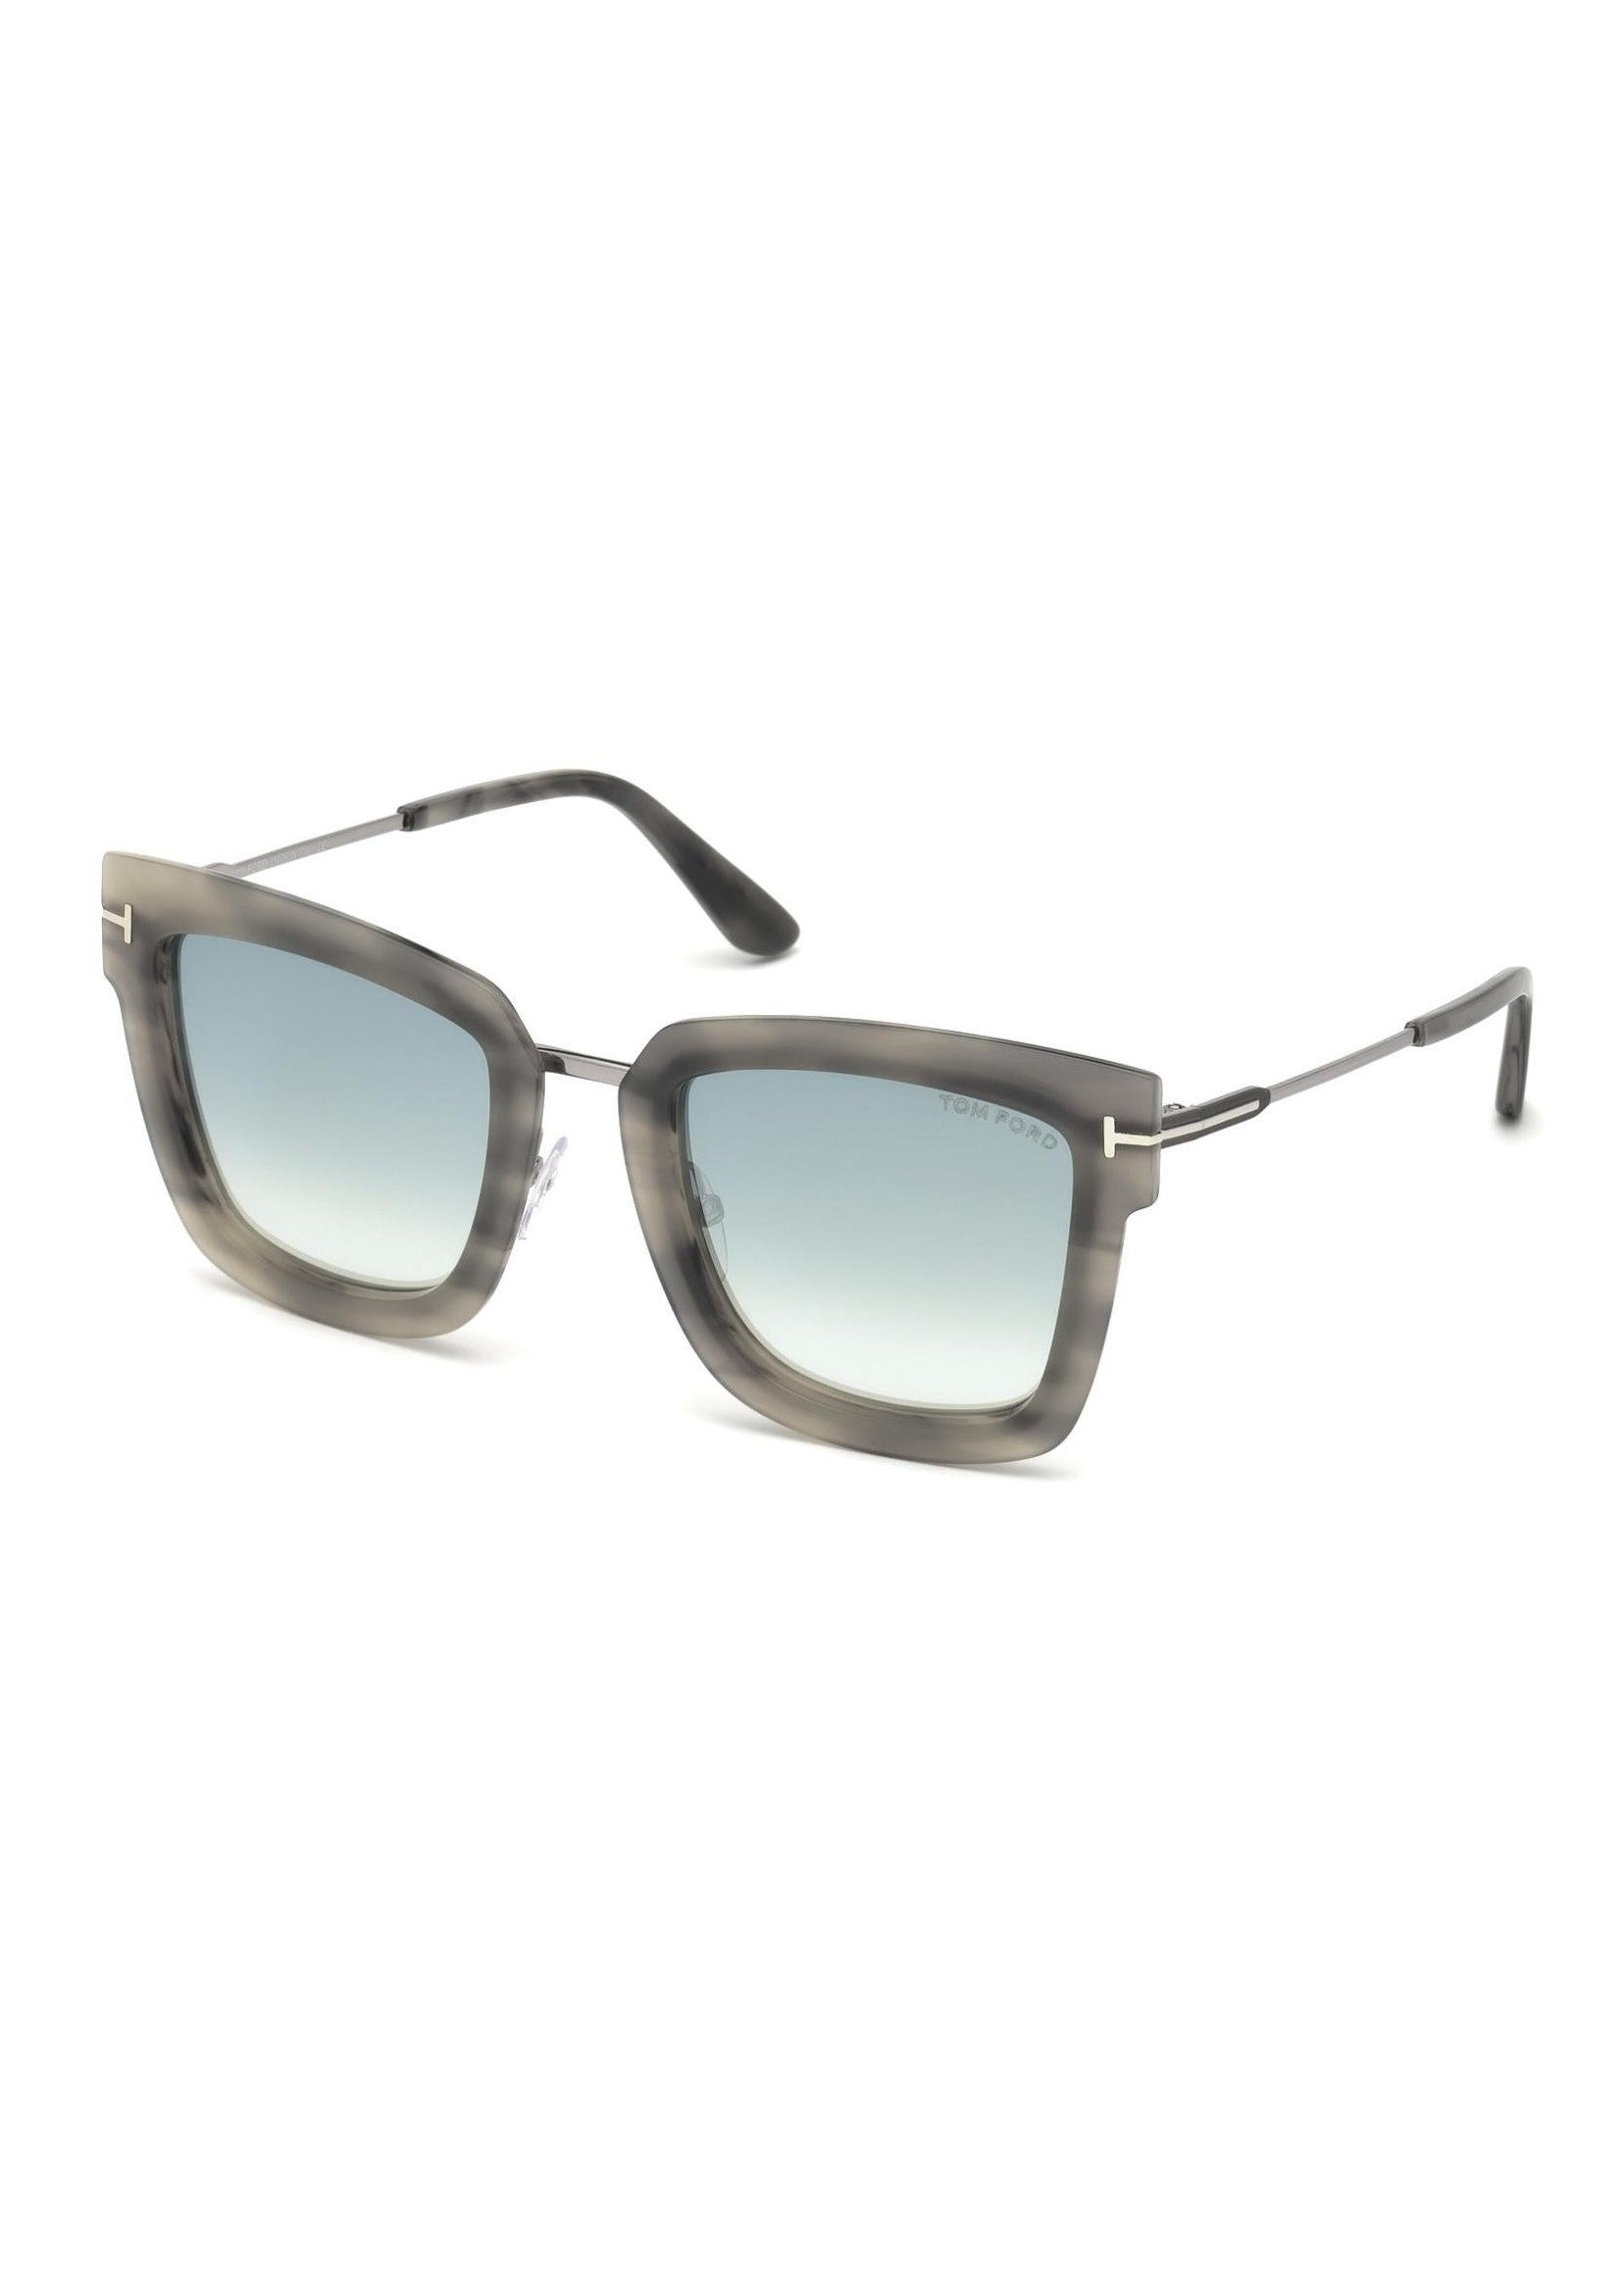 Tom Ford Lara sunglasses in colored havana